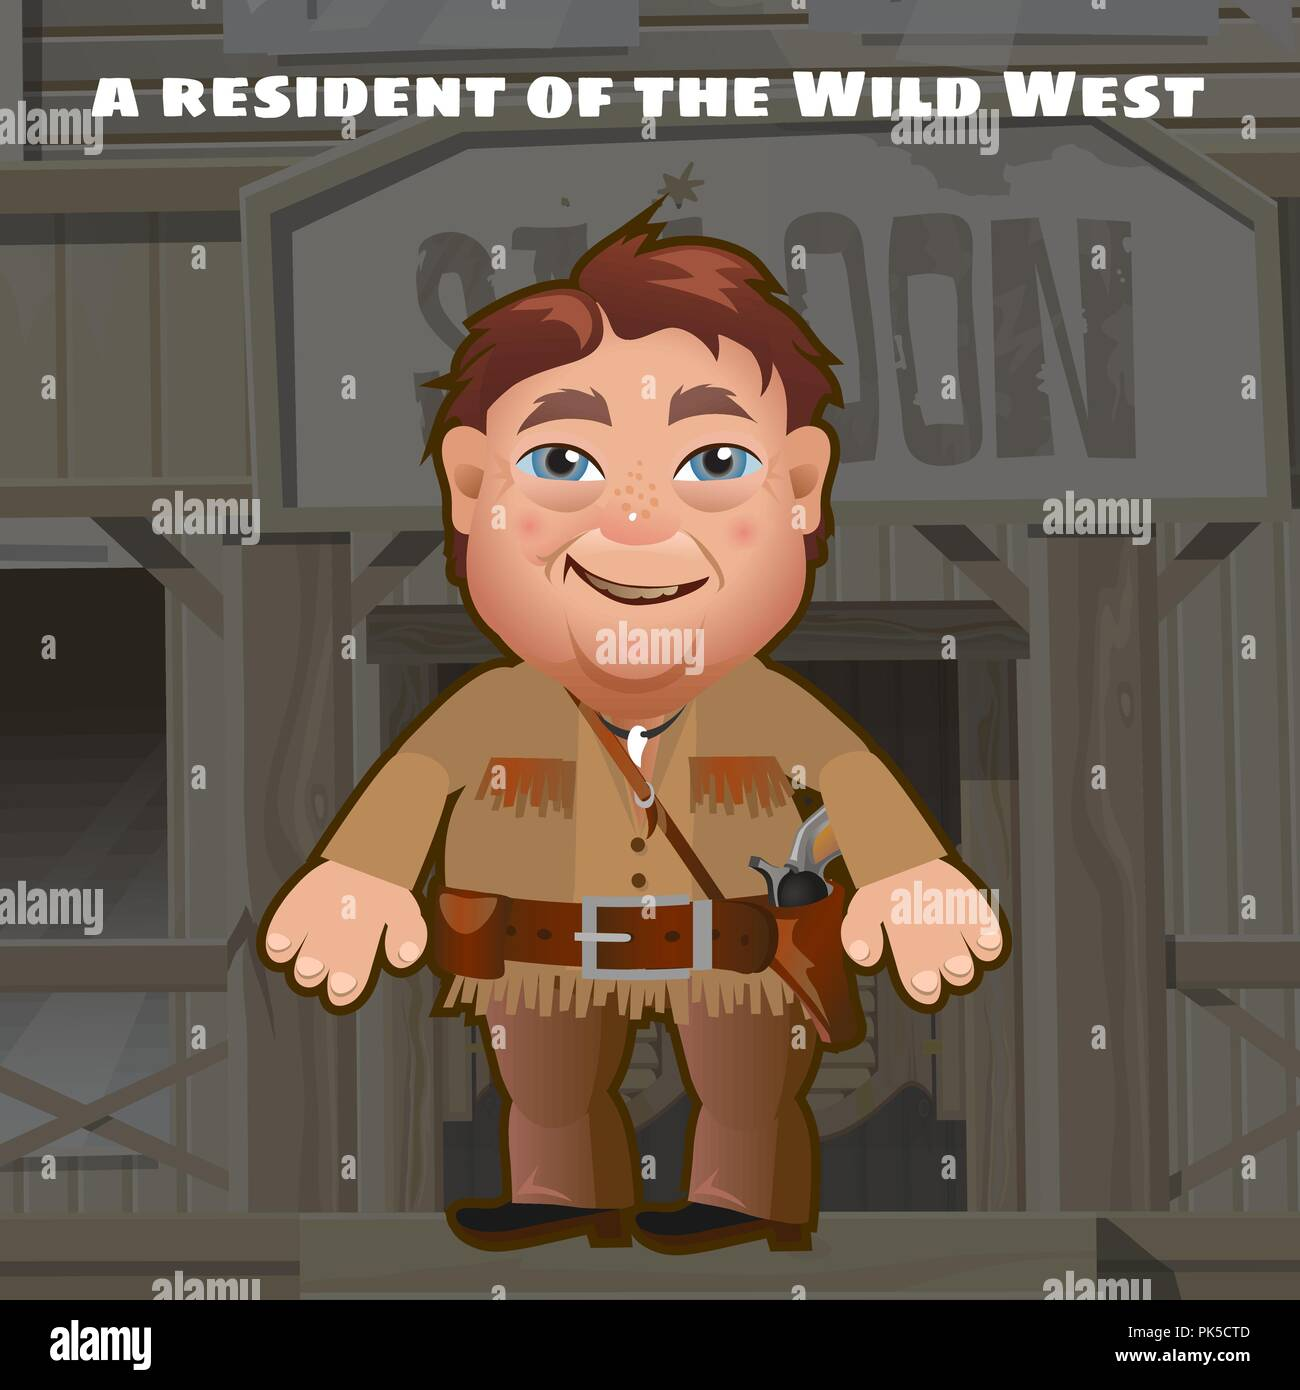 A resident of the wild West. An armed man stands in the background of the entrance to saloon. Funny animated man. Vector cartoon close-up illustration. - Stock Image